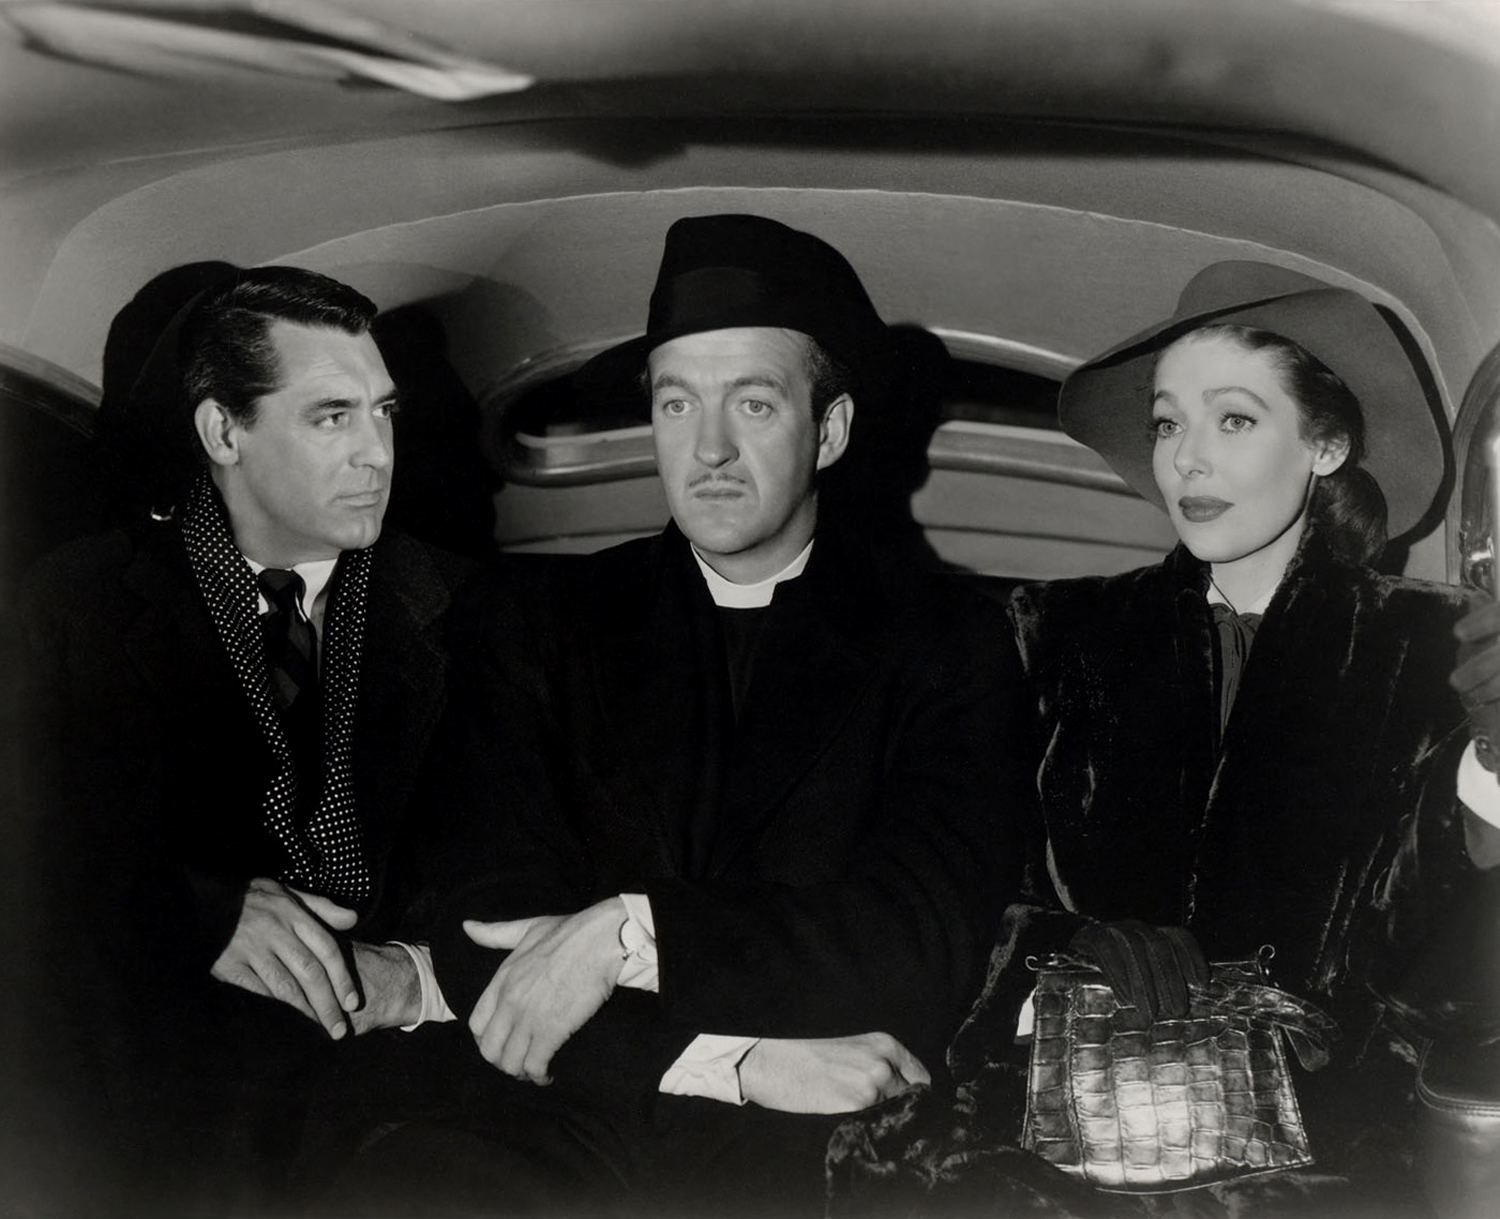 David Niven in The Bishop's Wife (L to R) Cary Grant, David Niven, Loretta Young